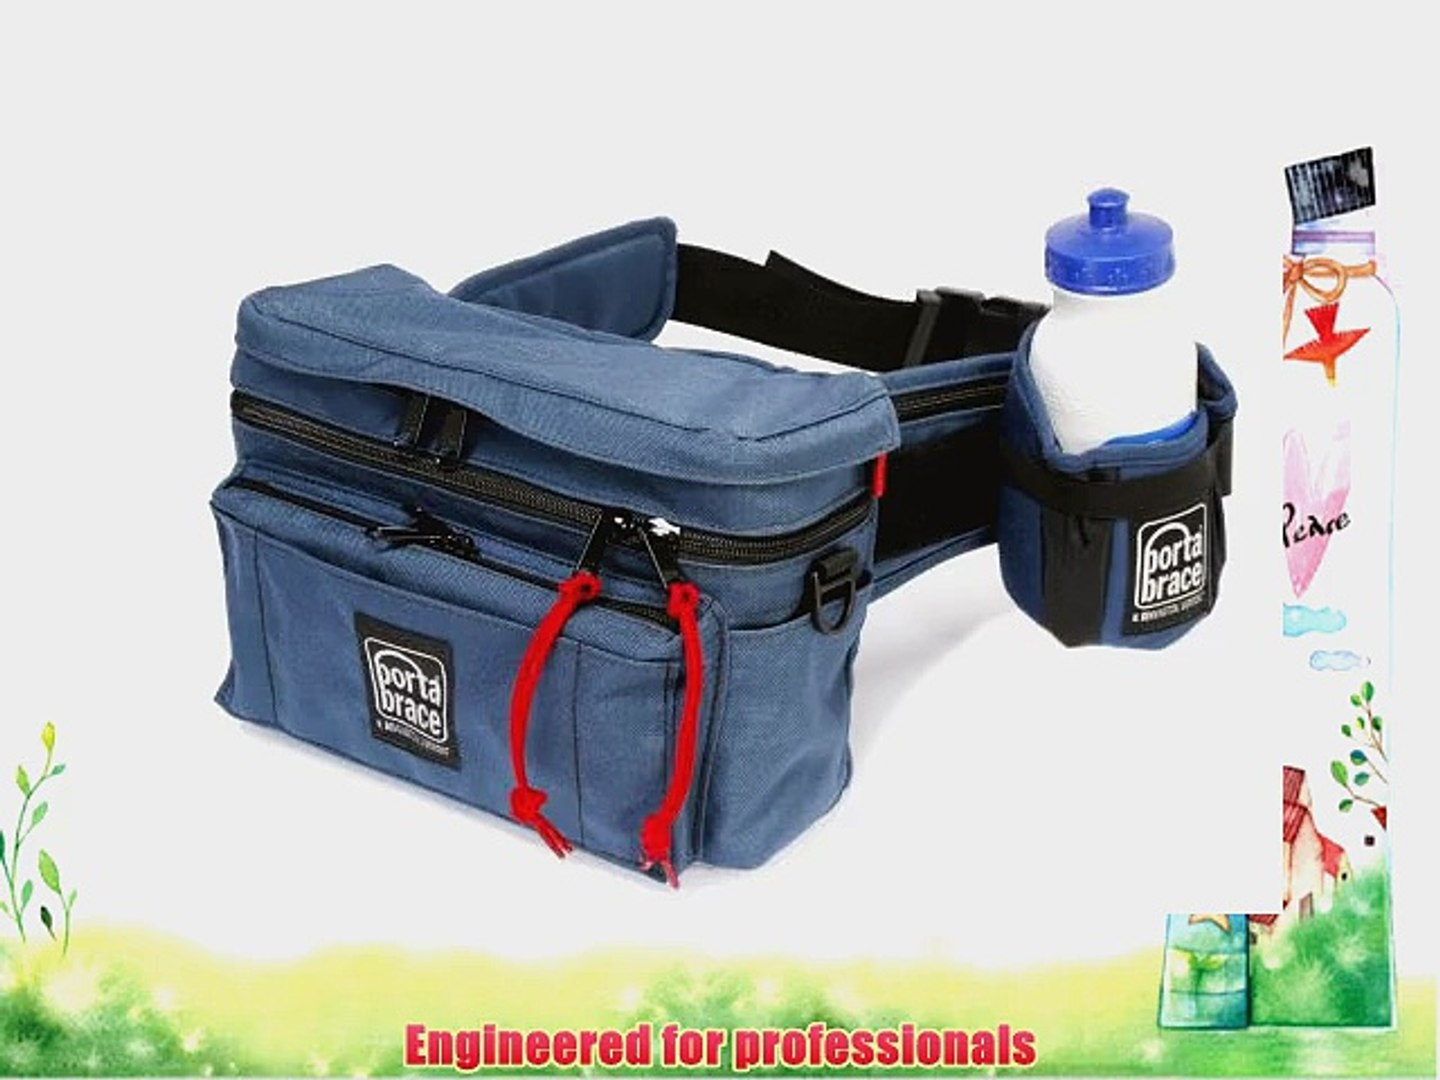 5737a06b0131 Portabrace HIP-3 Hip Pack - Large (Blue)